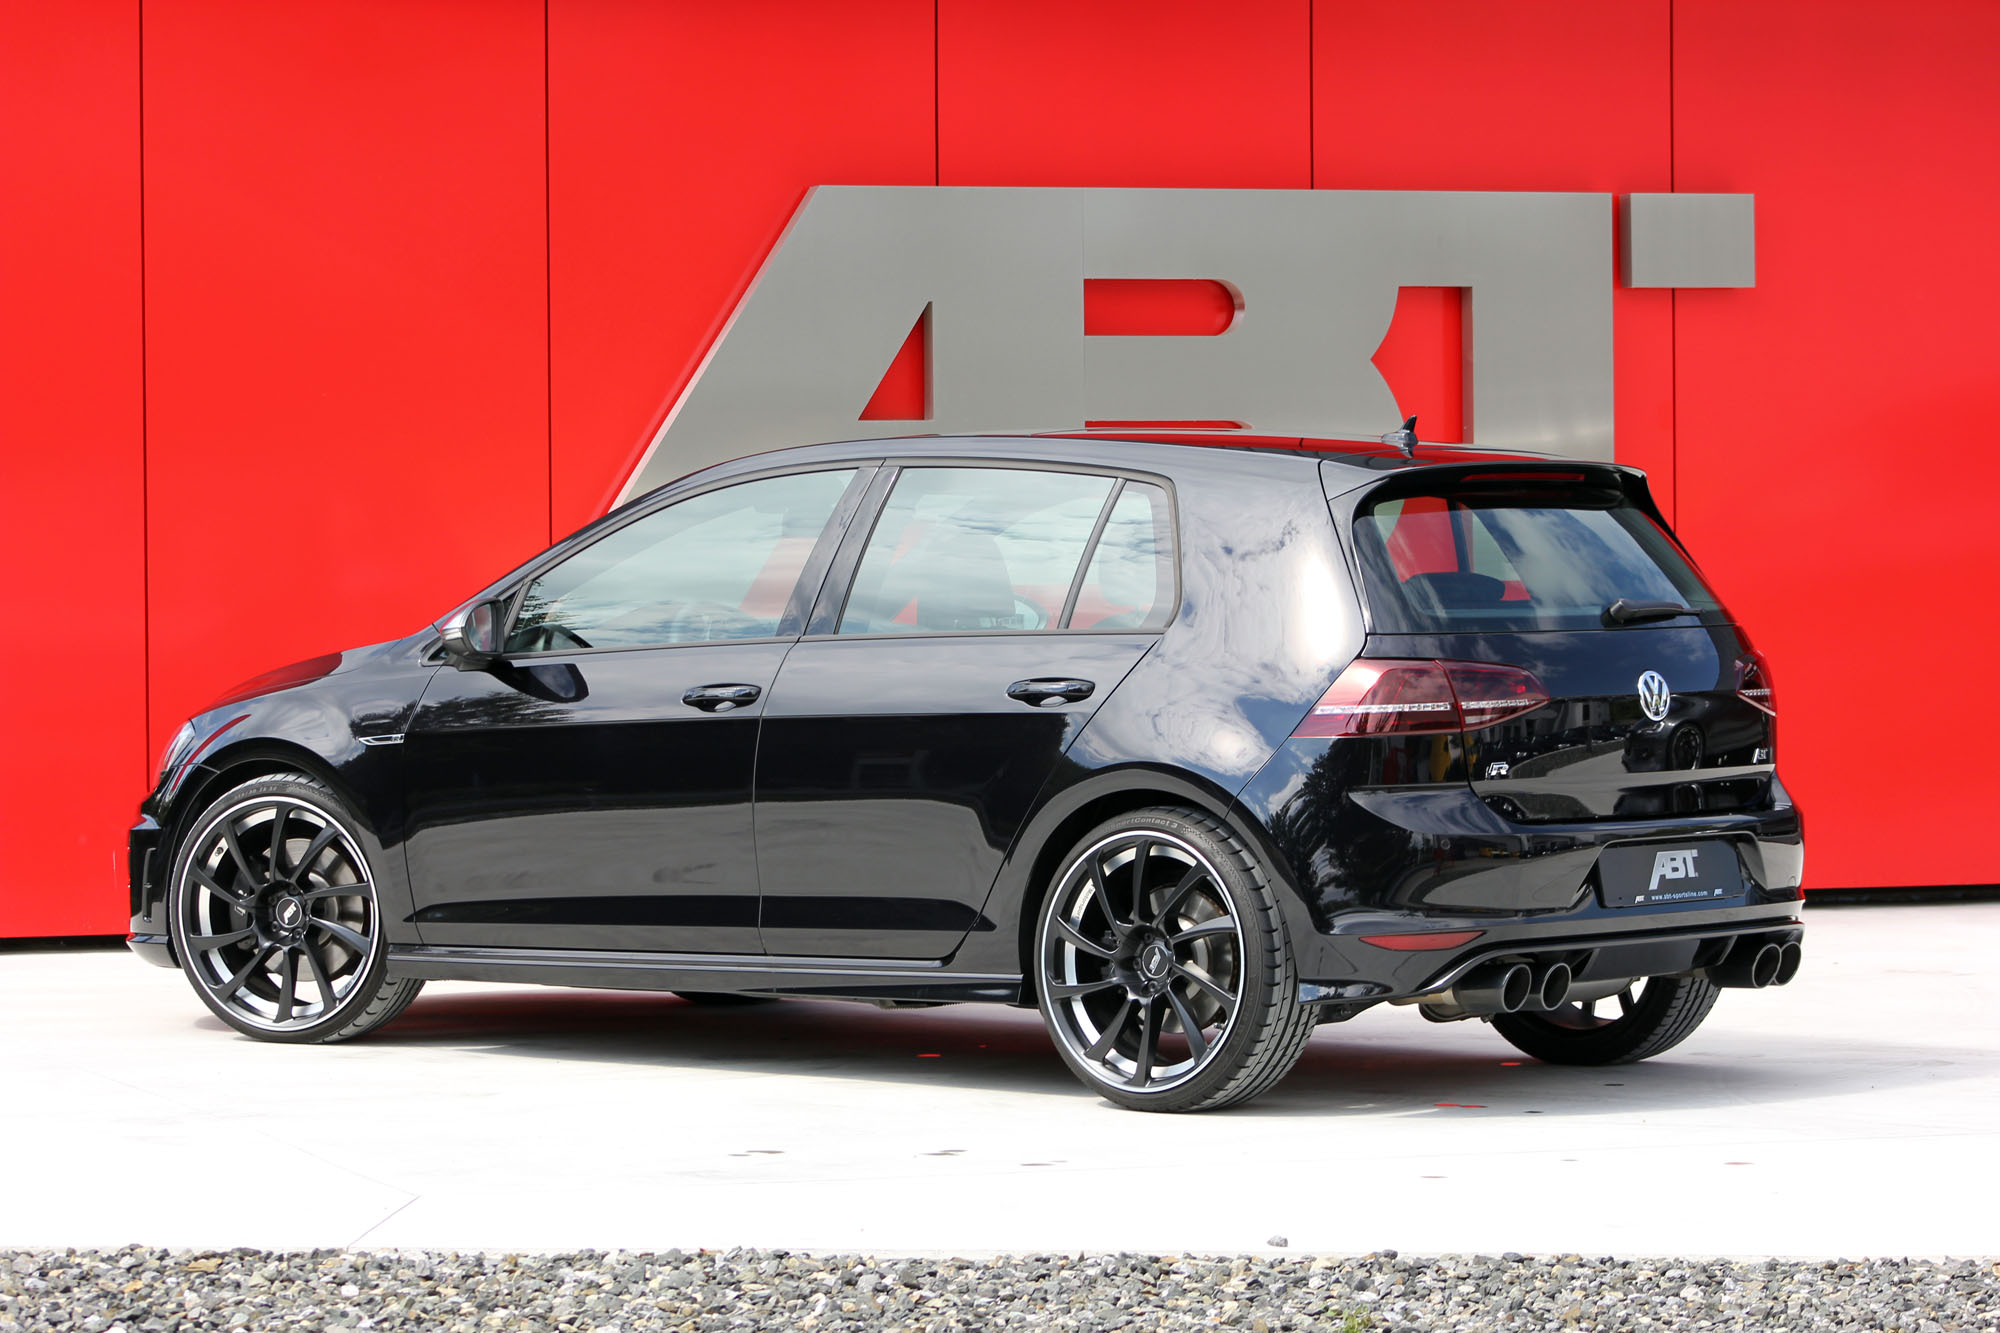 vw-golf-7-r-abt-golf-r-400-02